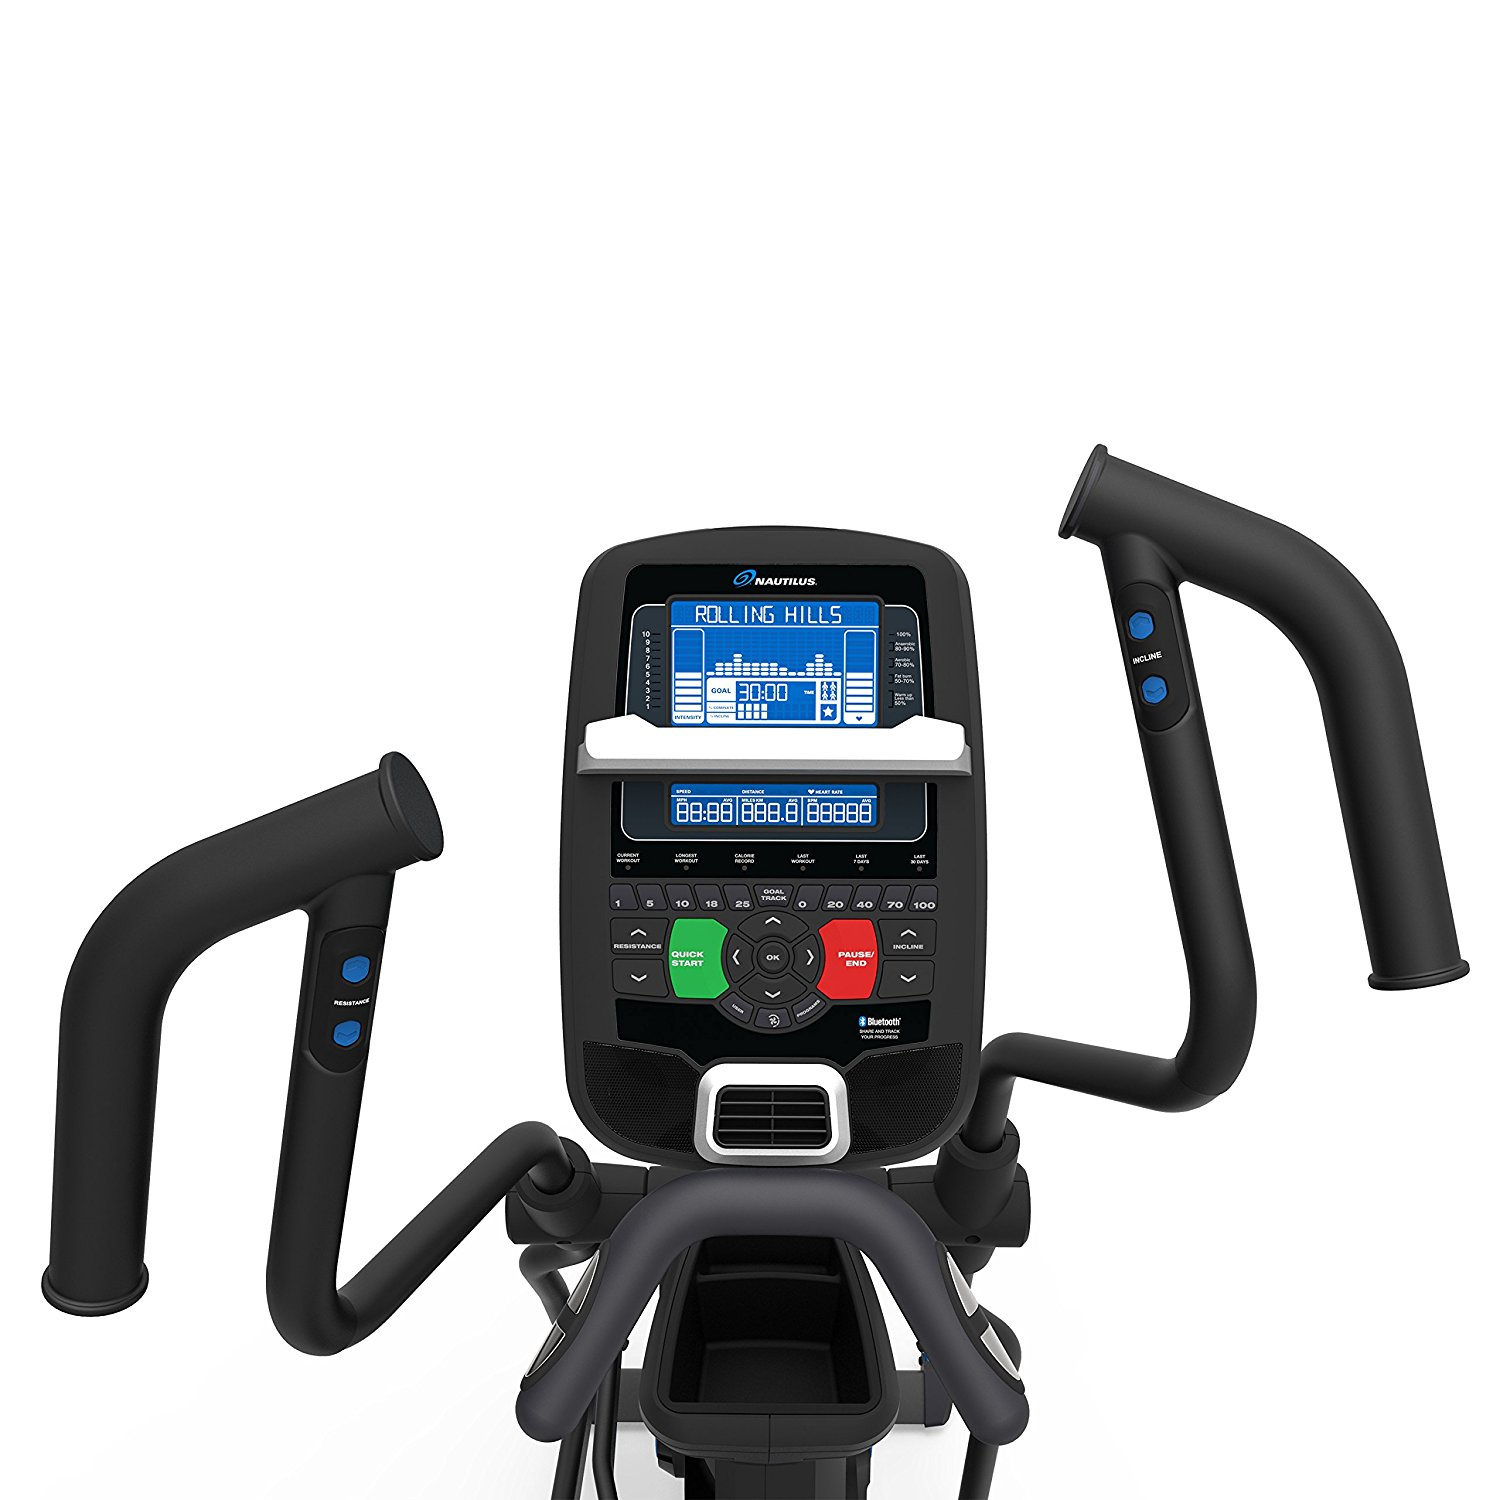 Nautilus E618 Elliptical Console - Dual Backlit Display and Multi Position Arms